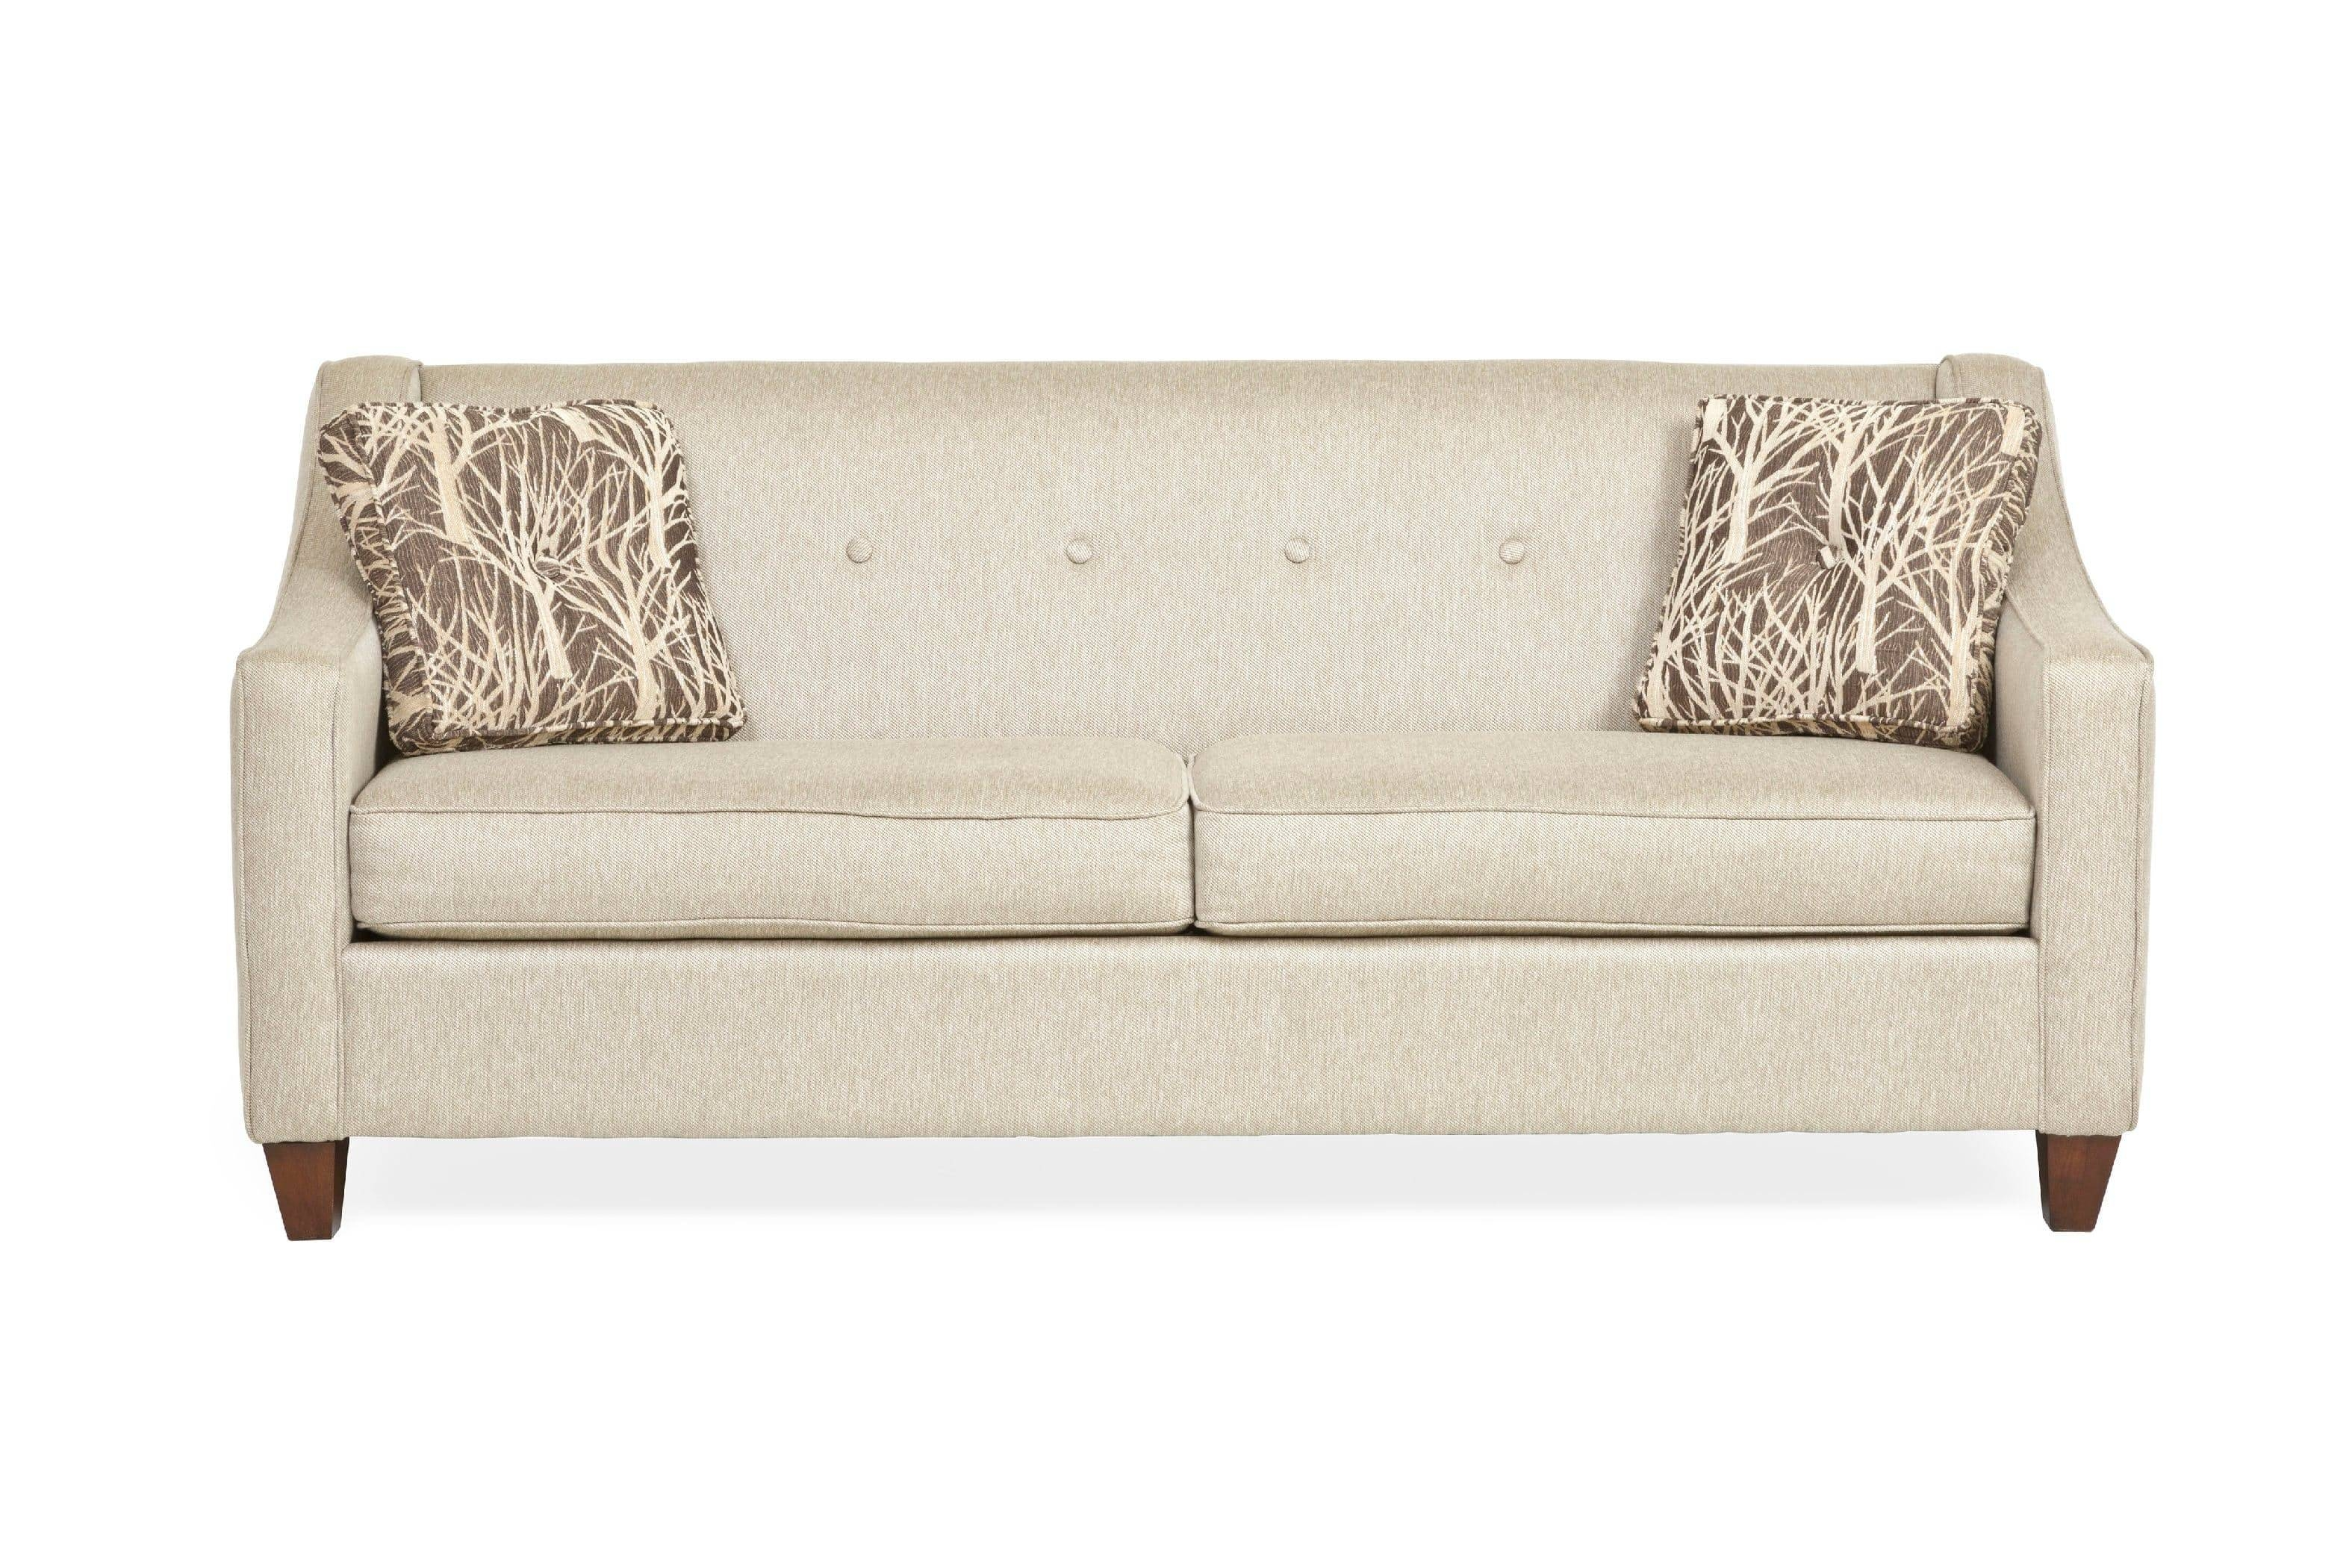 Macy Sleeper Sofa Full | Best Home Furniture Decoration in Pier 1 Sofa Beds (Image 10 of 15)